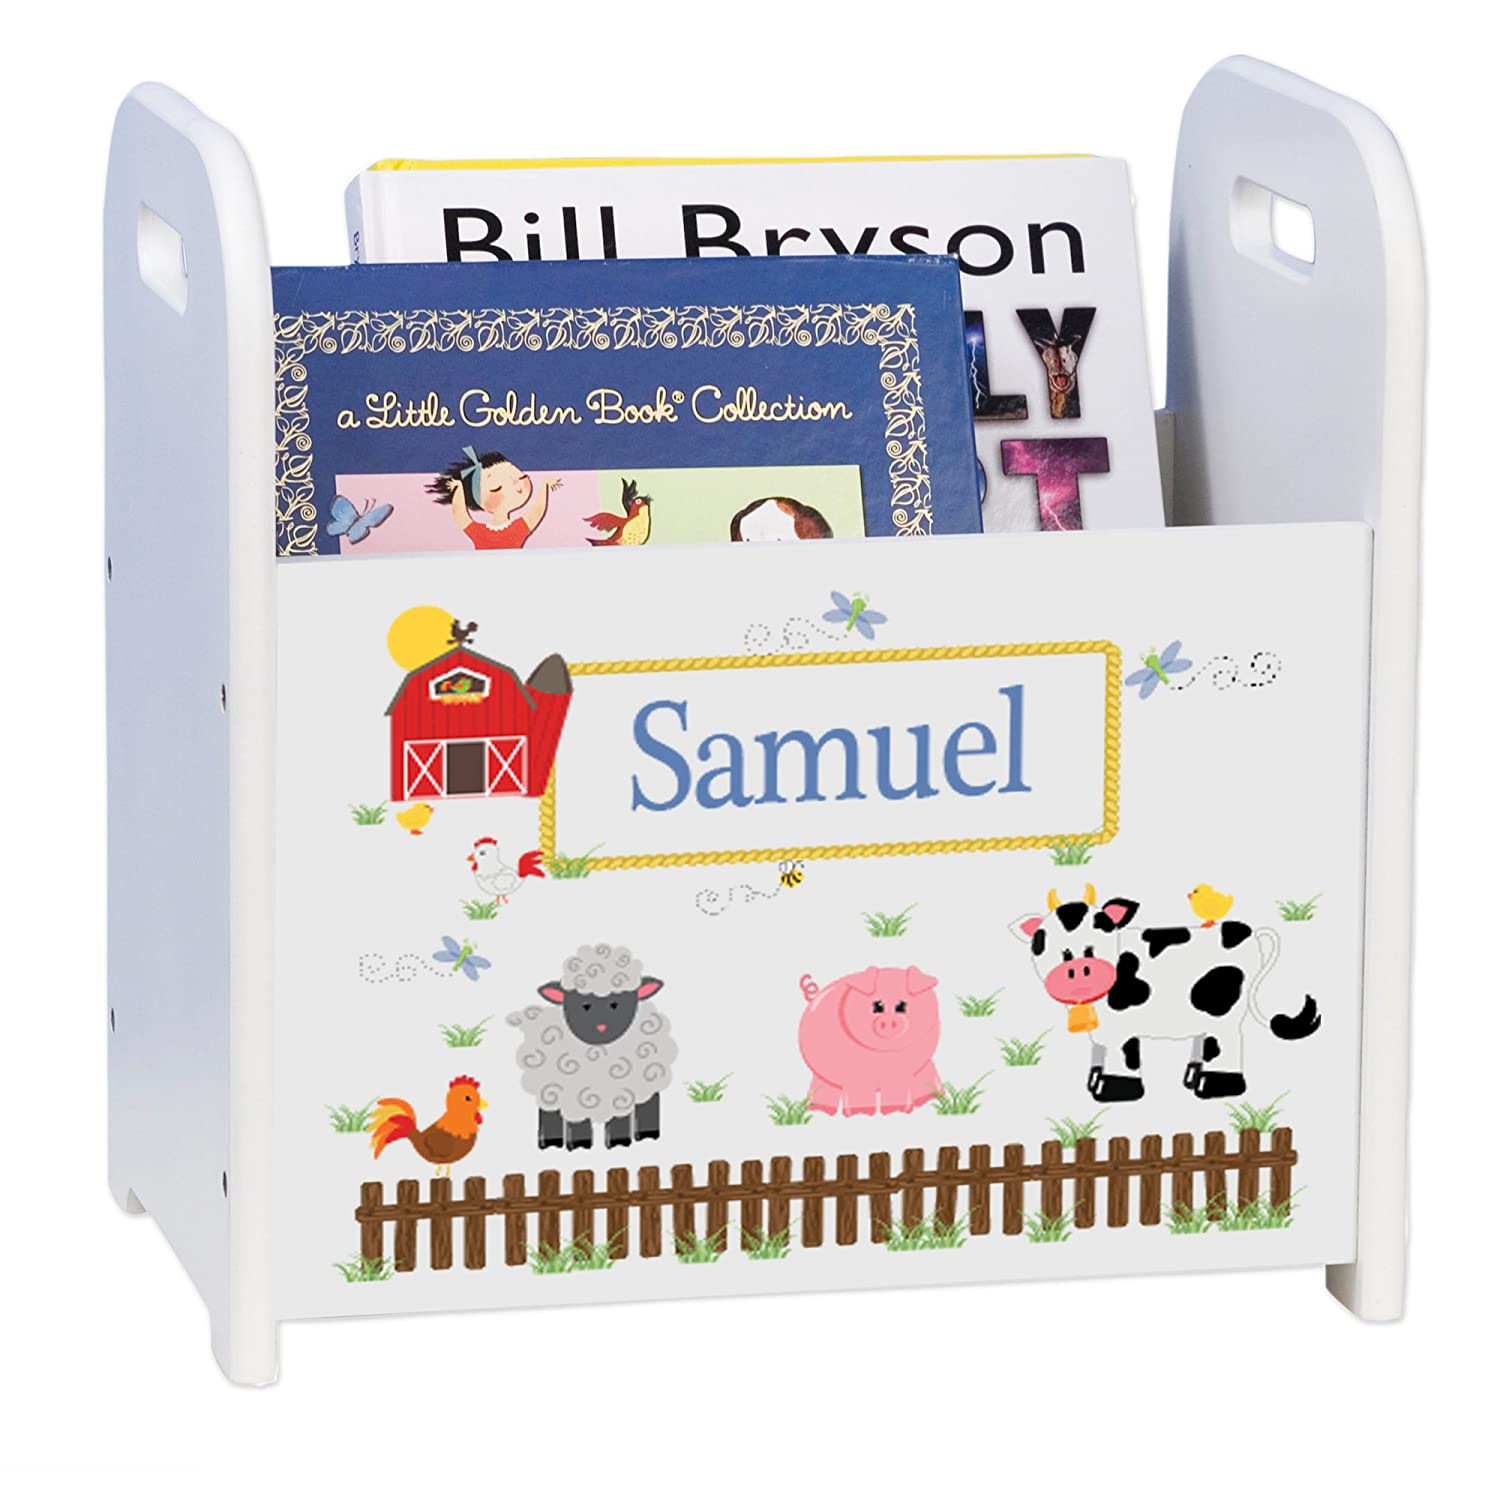 Personalized Barnyard Friends Direct store Pastel latest White Book Rack Caddy and